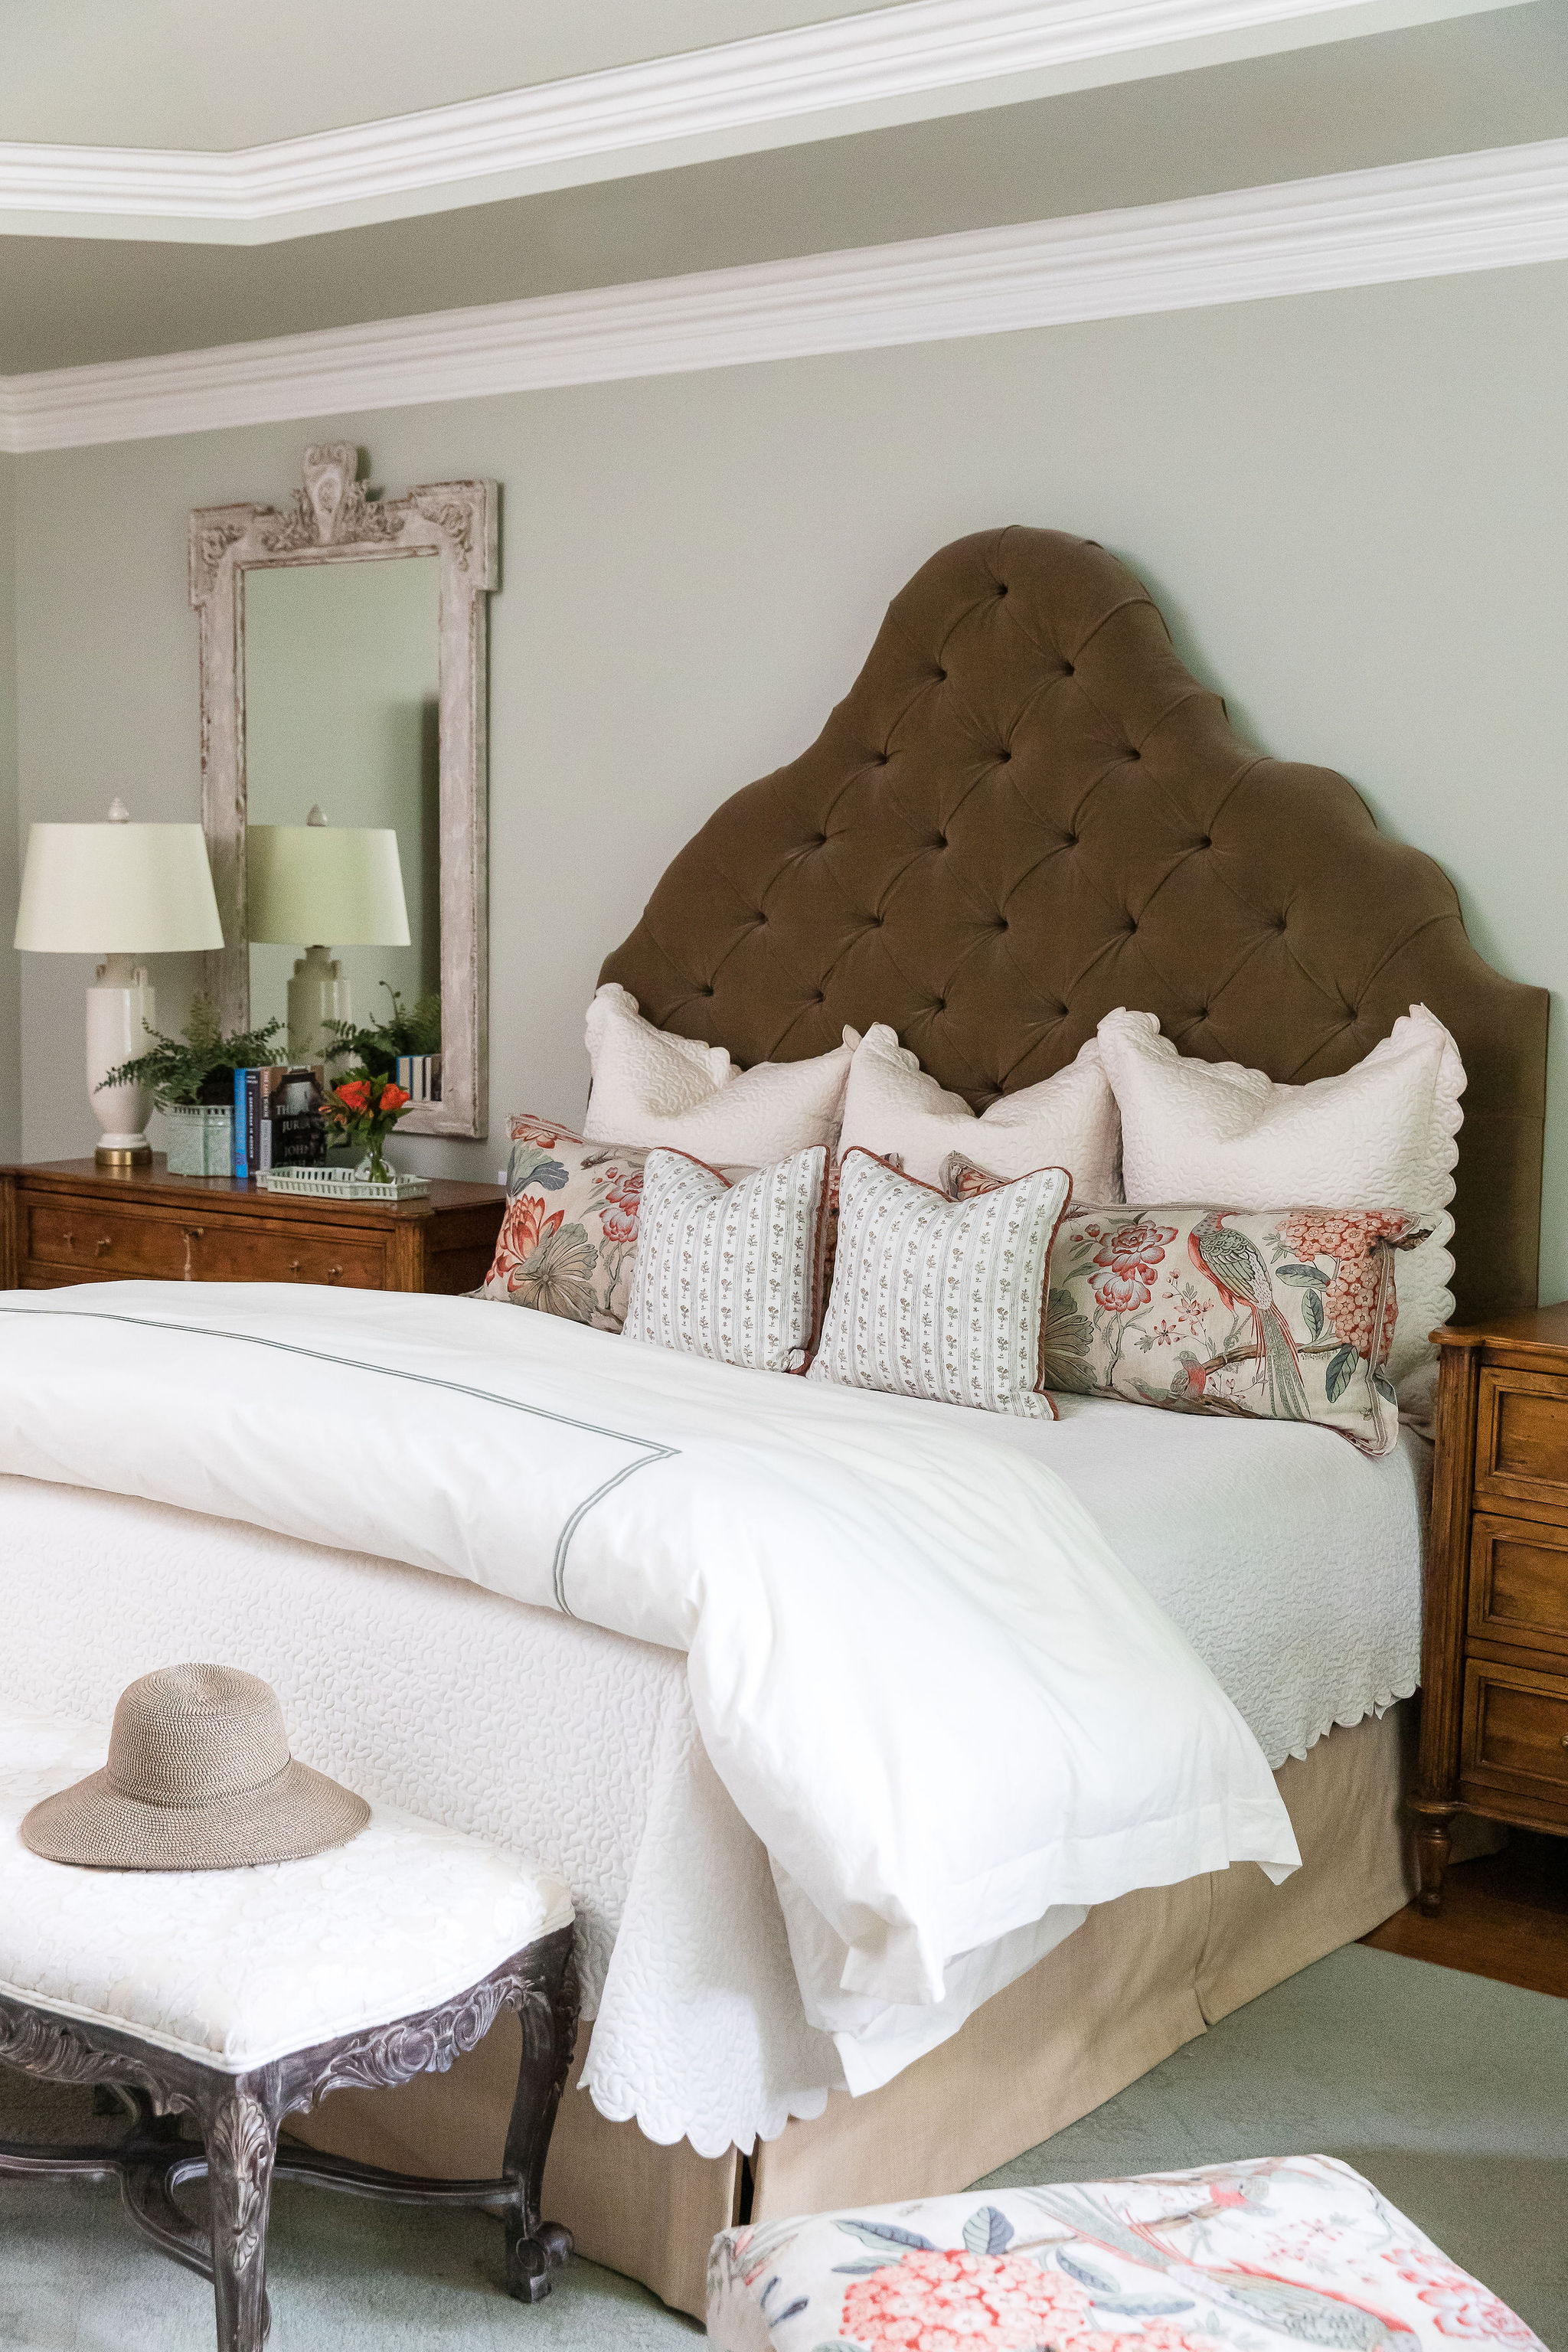 Upholstered headboard with large pillows, interior design in Nashville, TN by Eric Ross Interiors, call today to schedule your next design project.